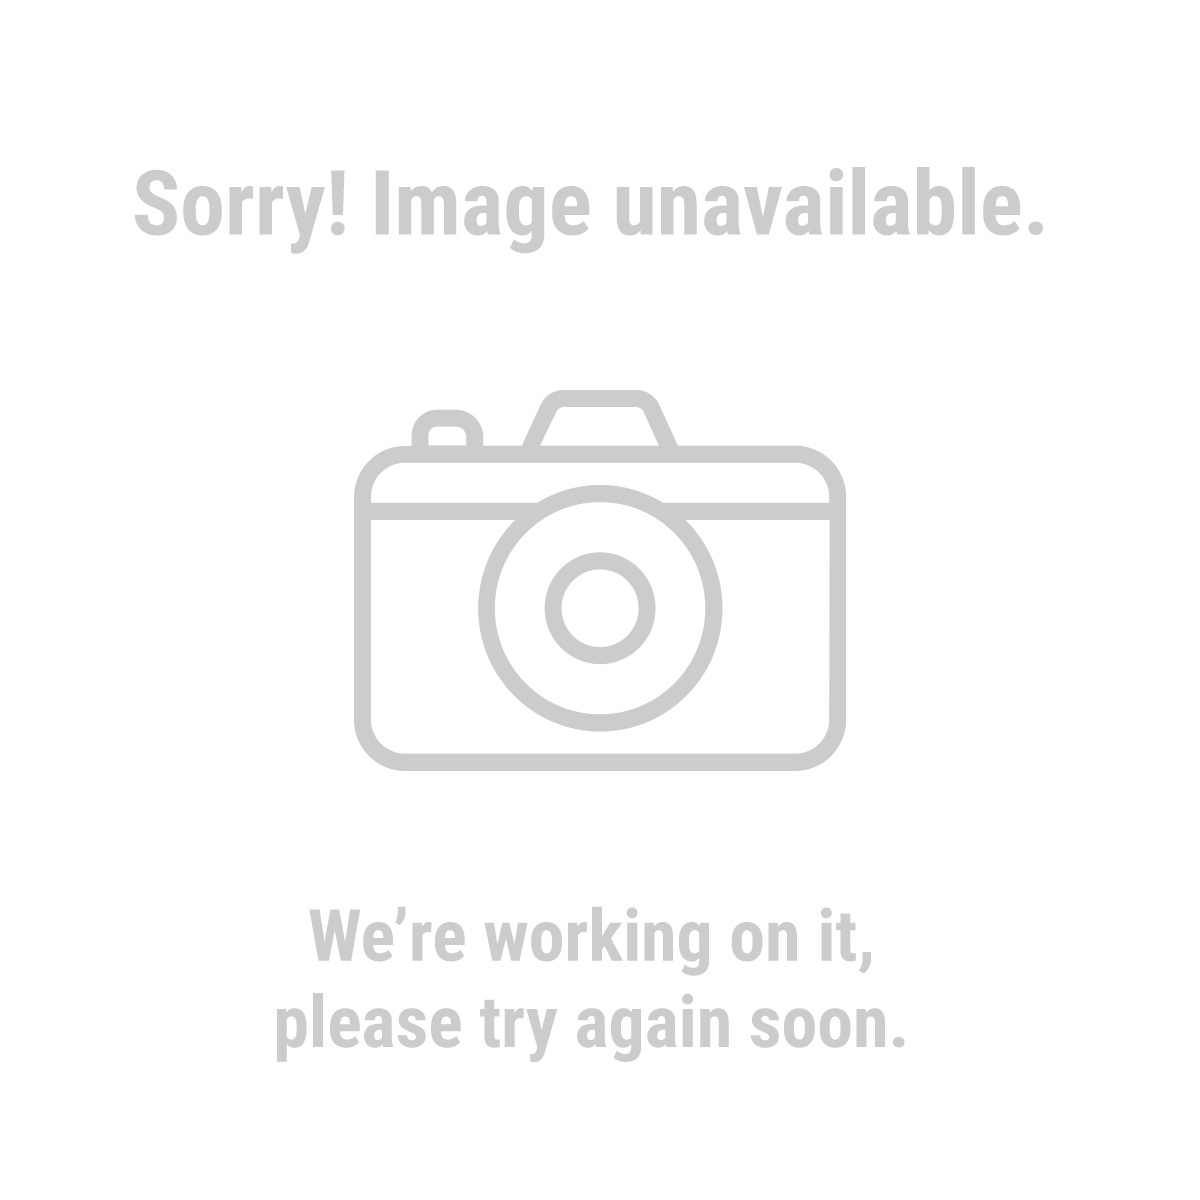 HFT 61992 25 ft. x 16 Gauge Outdoor Extension Cord